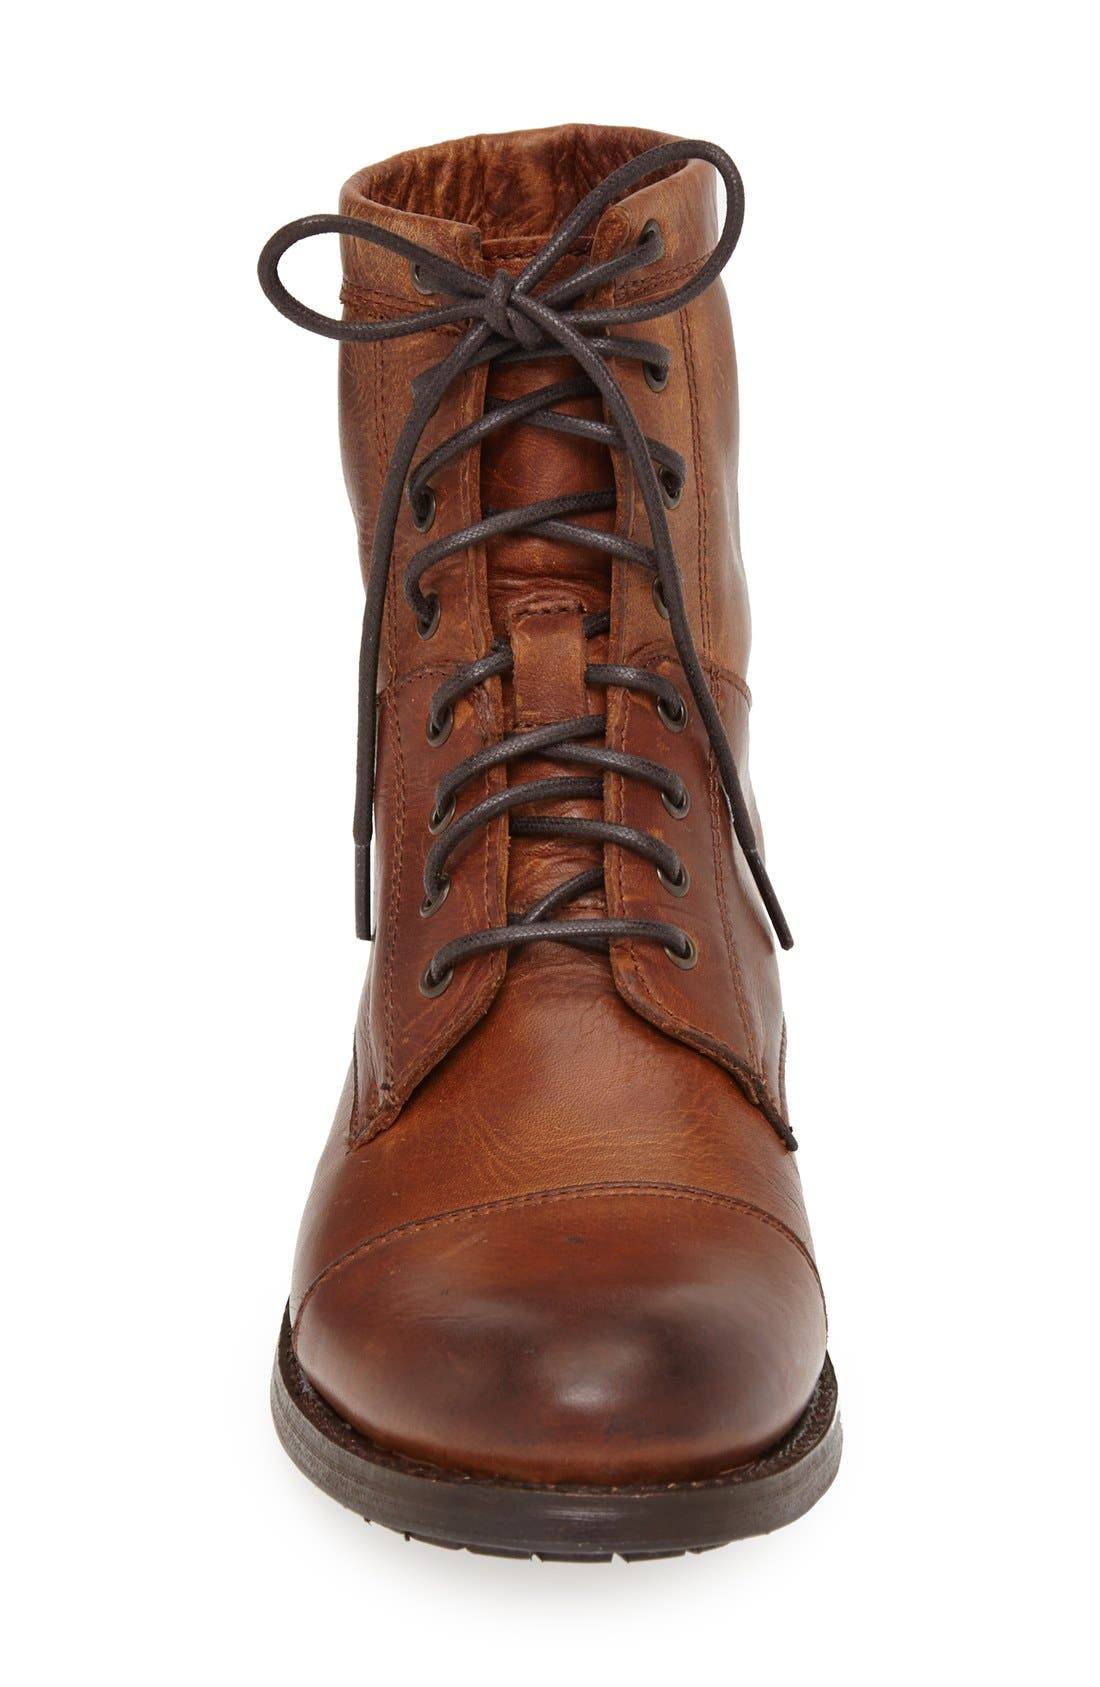 Alternate Image 3  - Frye 'Erin' Cap Toe Leather Lace-Up Boot (Women)